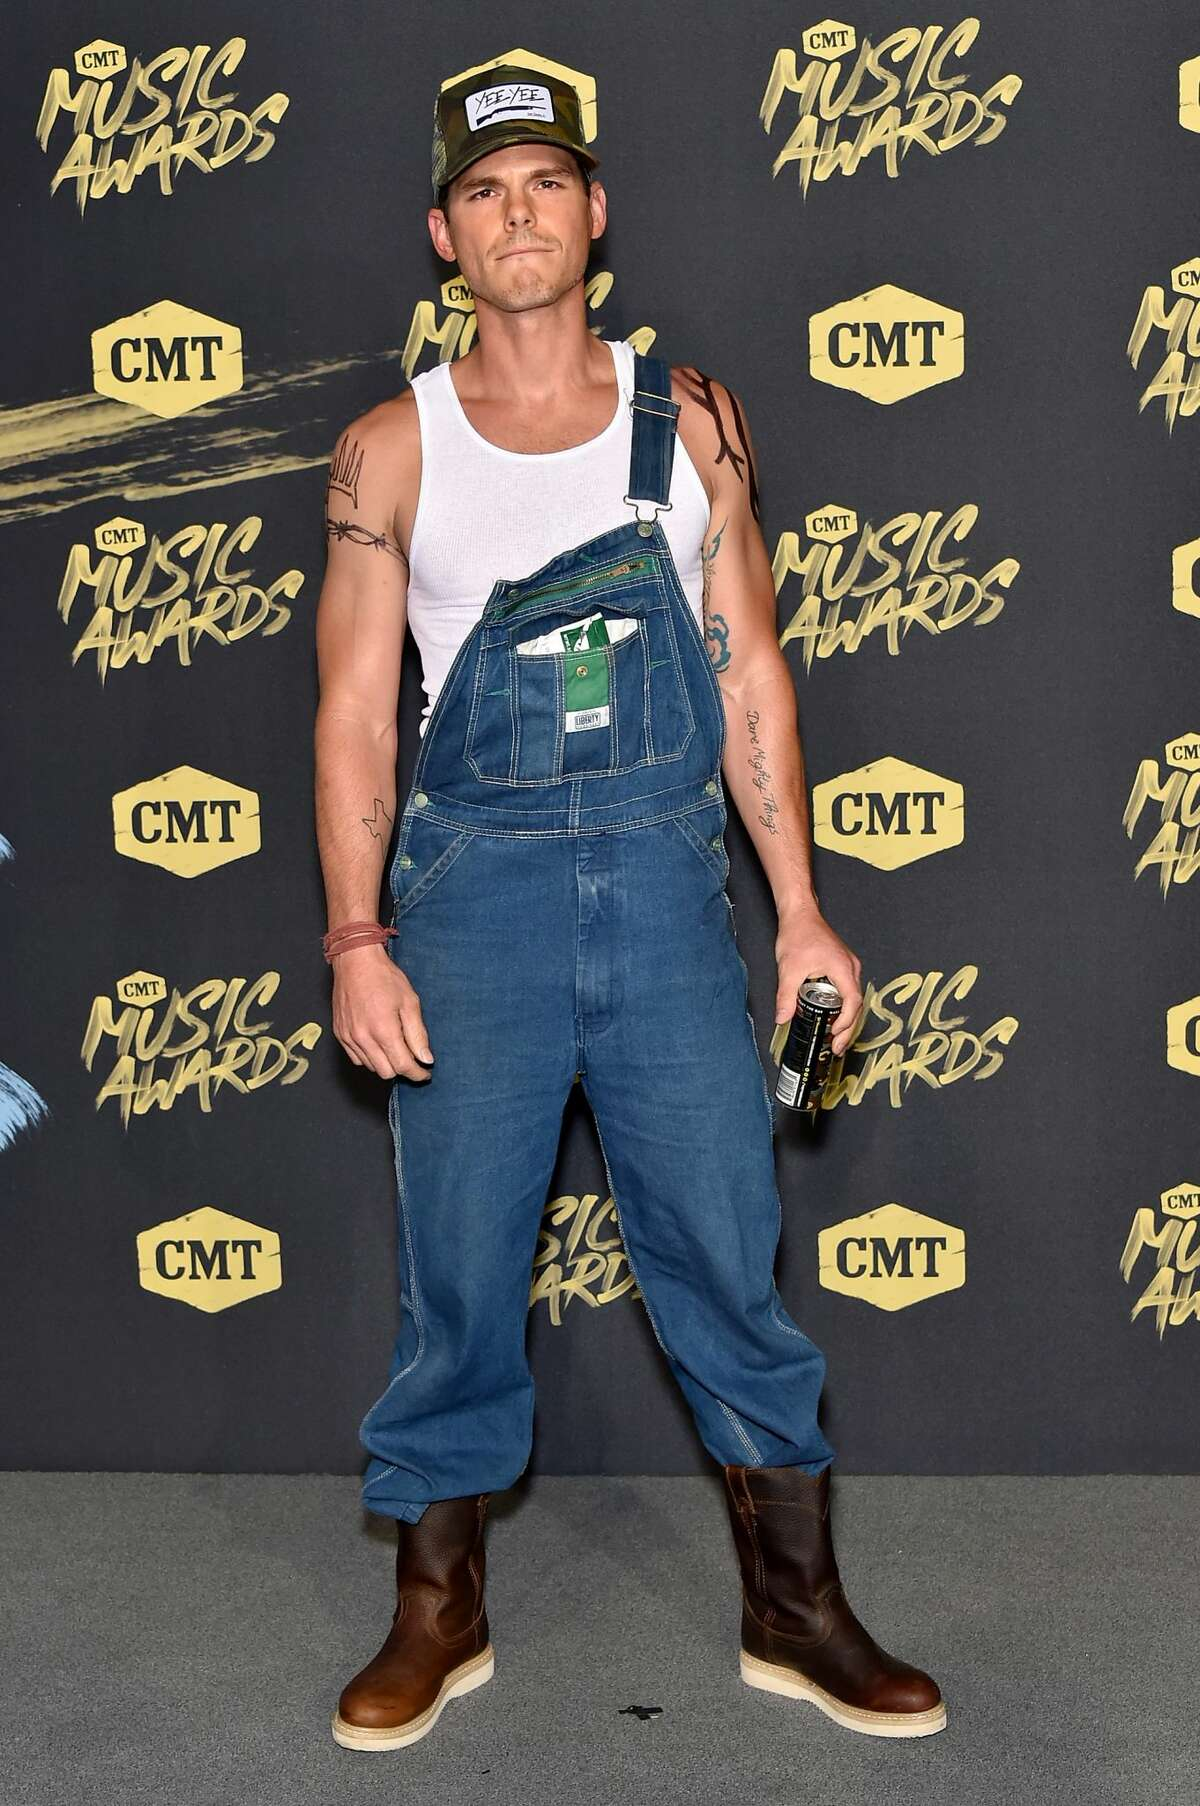 NASHVILLE, TN - JUNE 06: Earl Dibbles Jr. attends the 2018 CMT Music Awards at Bridgestone Arena on June 6, 2018 in Nashville, Tennessee. (Photo by Mike Coppola/Getty Images for CMT)